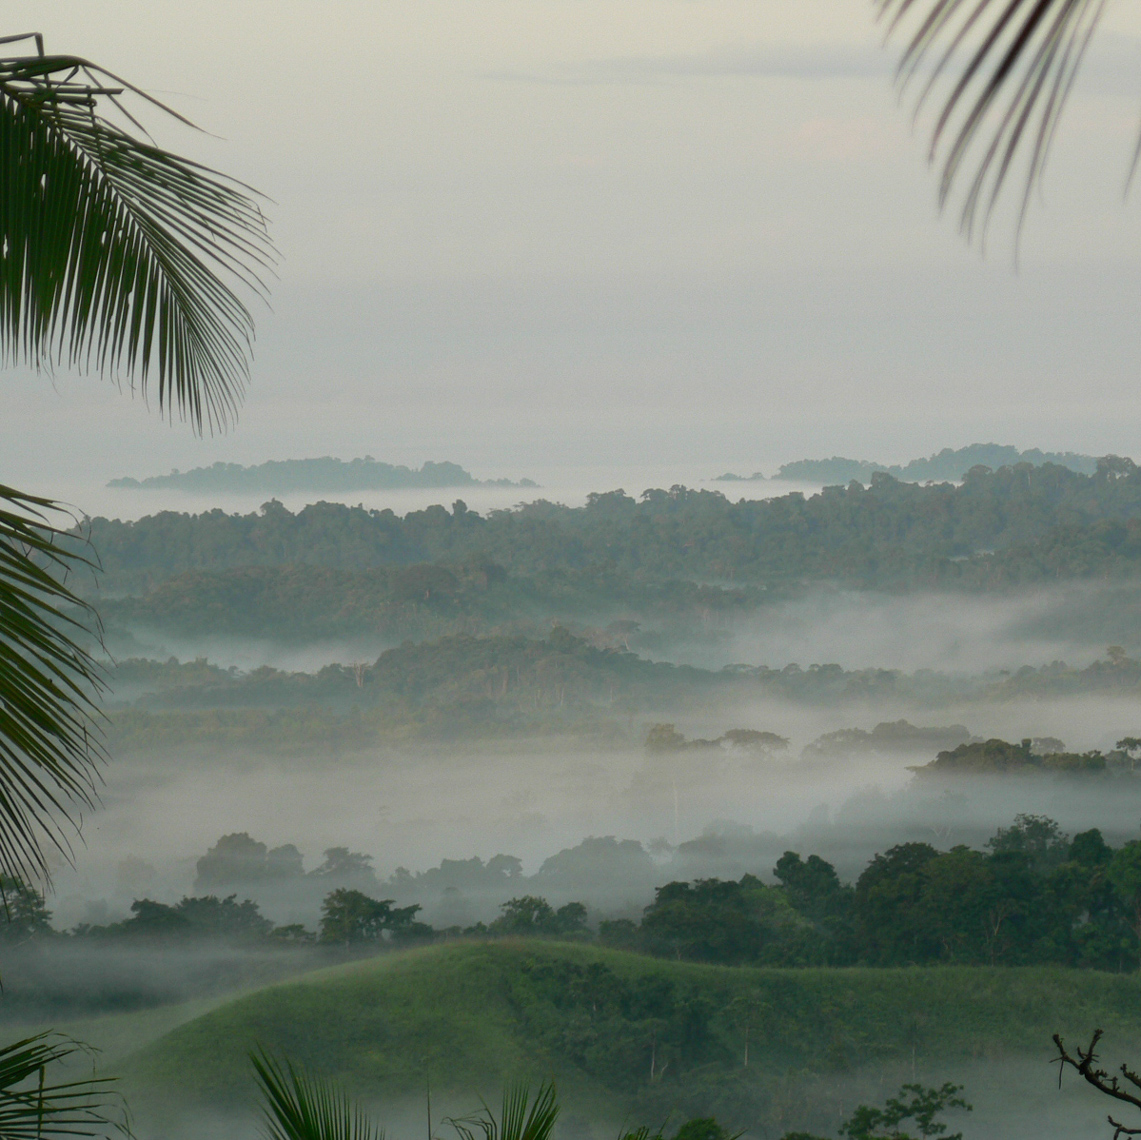 Misty New Guinea Morning, Heading out for Oceanic Art